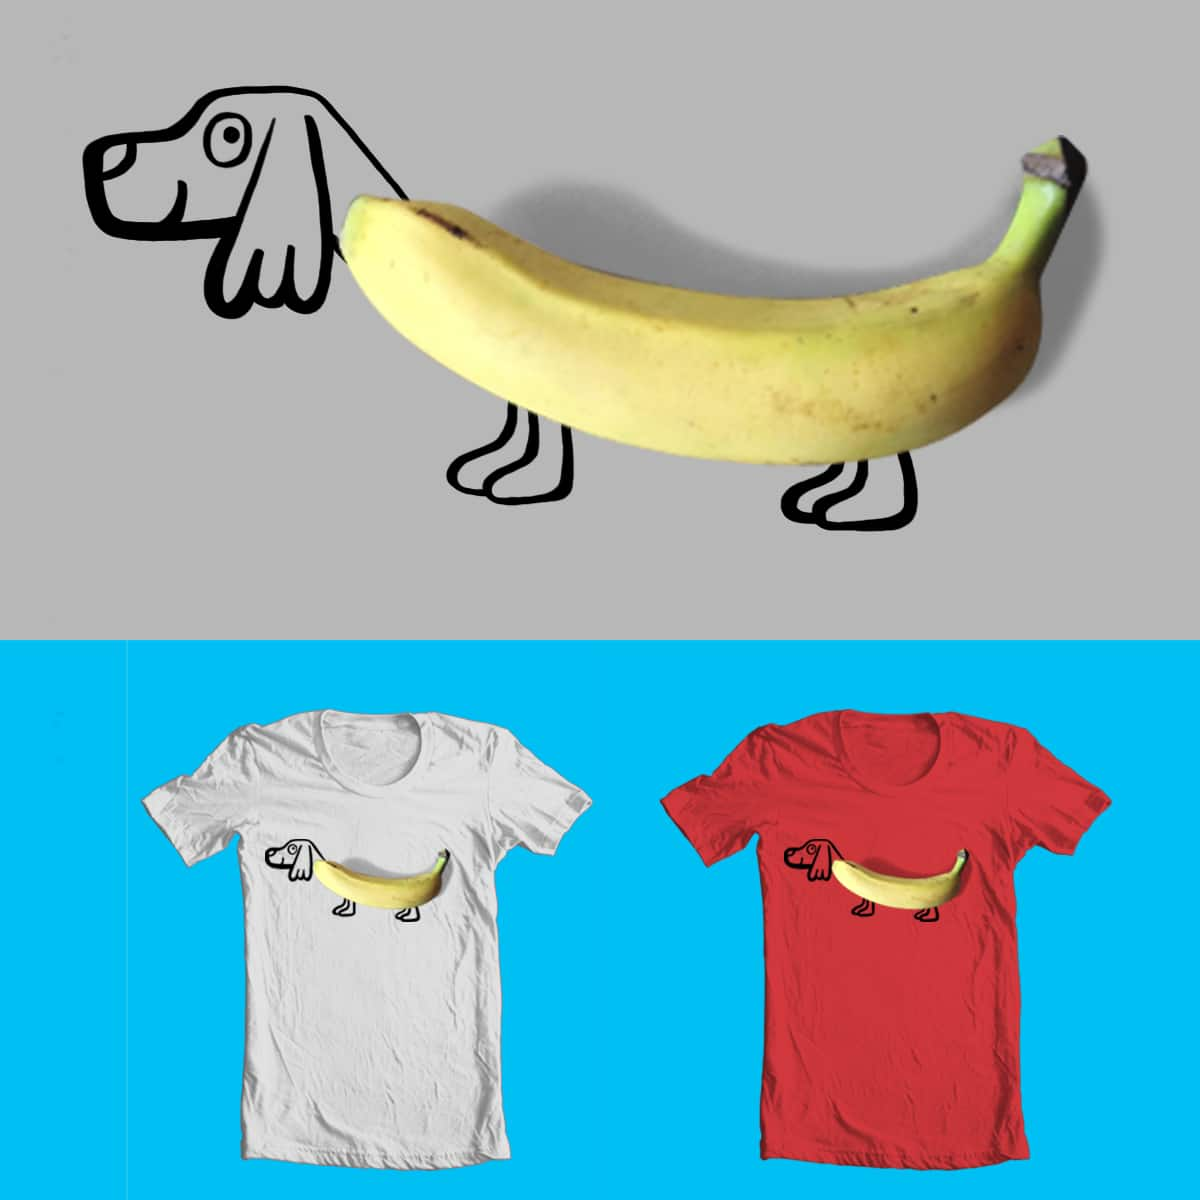 Sometimes a dog looks like a banana by bendablerubber on Threadless